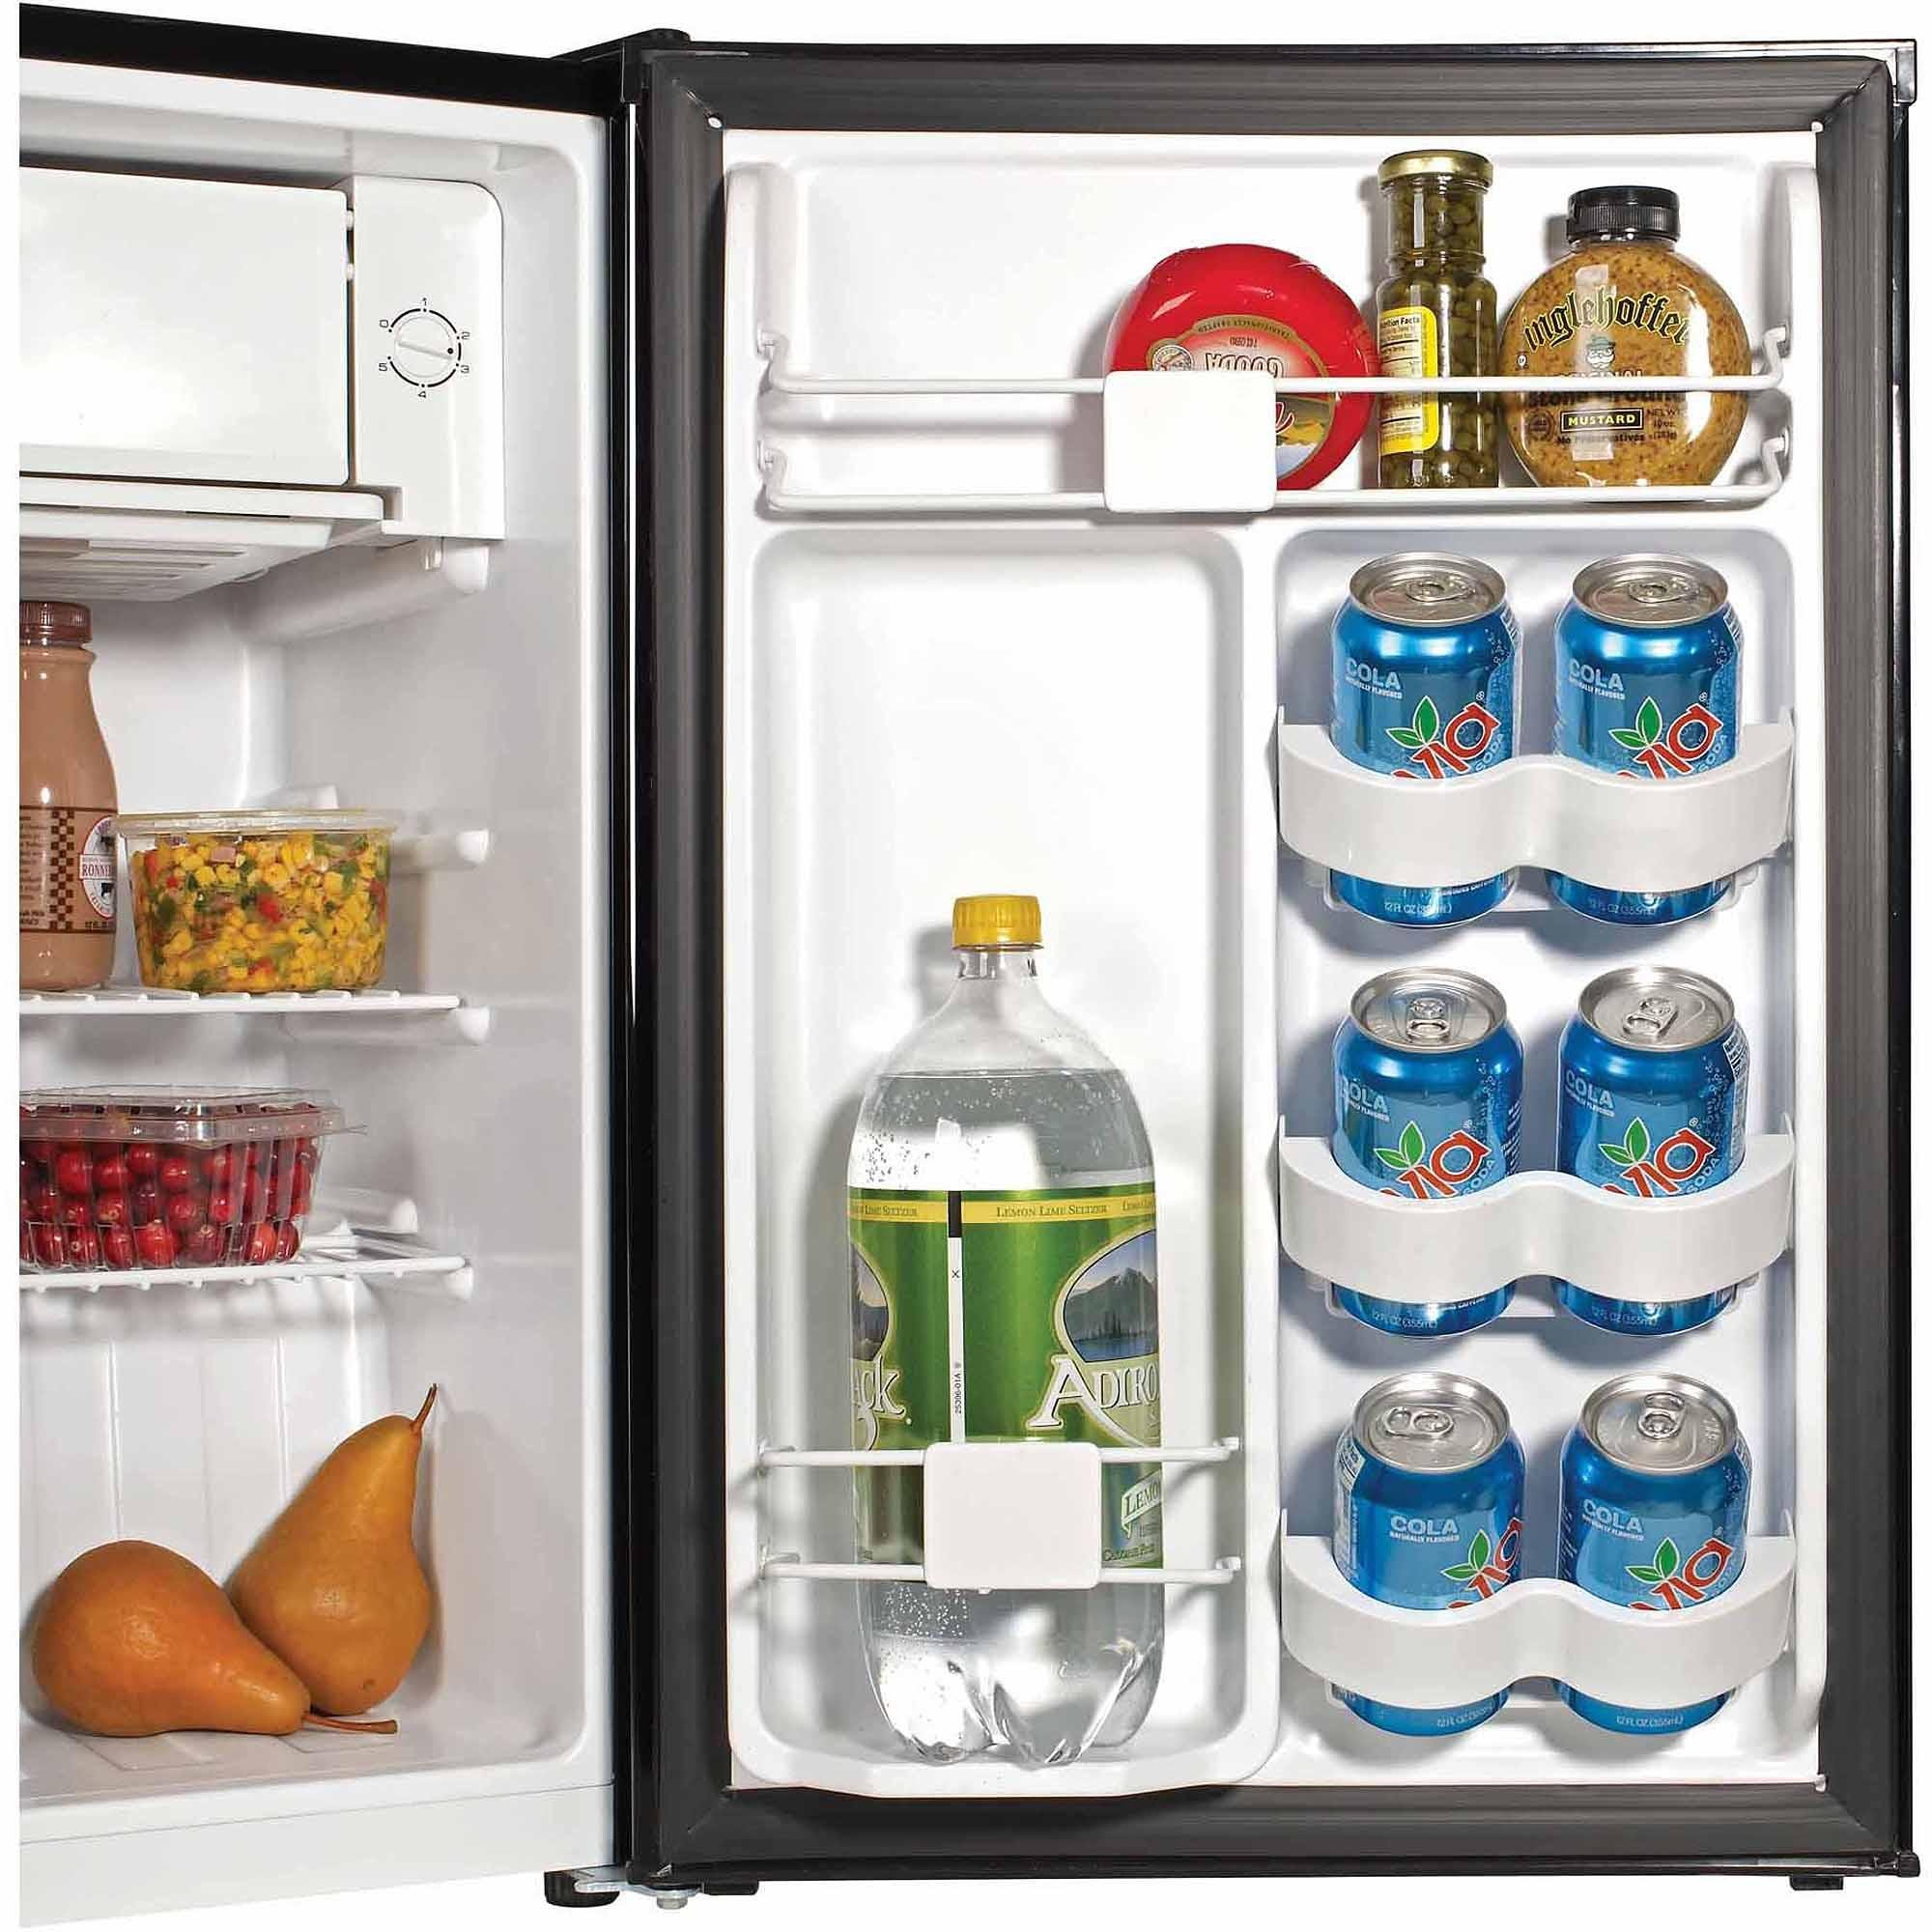 2.7 Cu ft. Compact Design Refrigerator with Ice Cube Tray and Two Full-Width Wire Shelves, Black